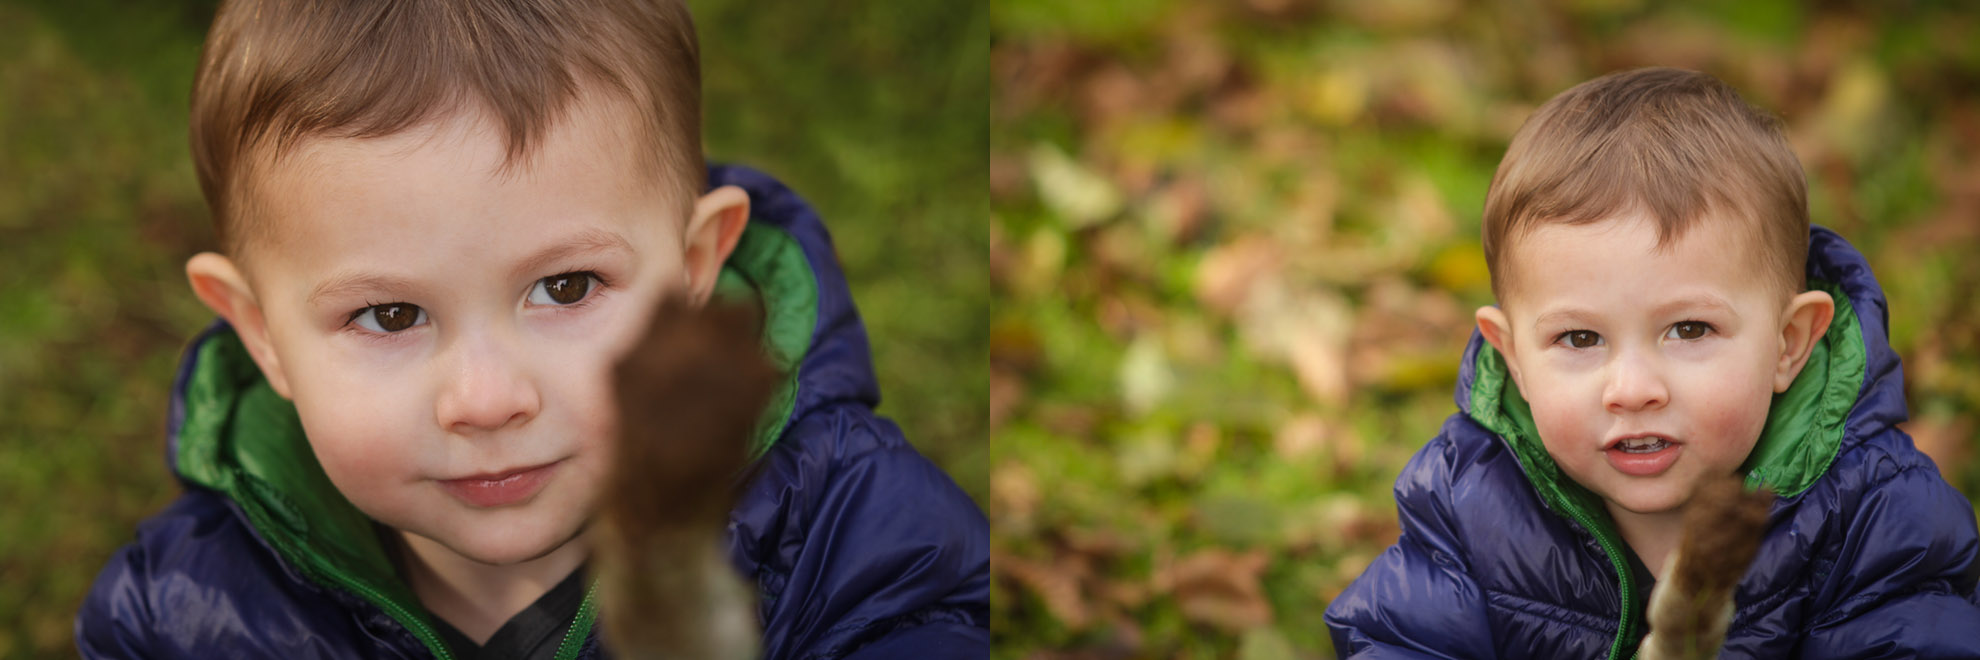 Hamilton-photographer-childrens-photography-outdoor-play-session.jpg